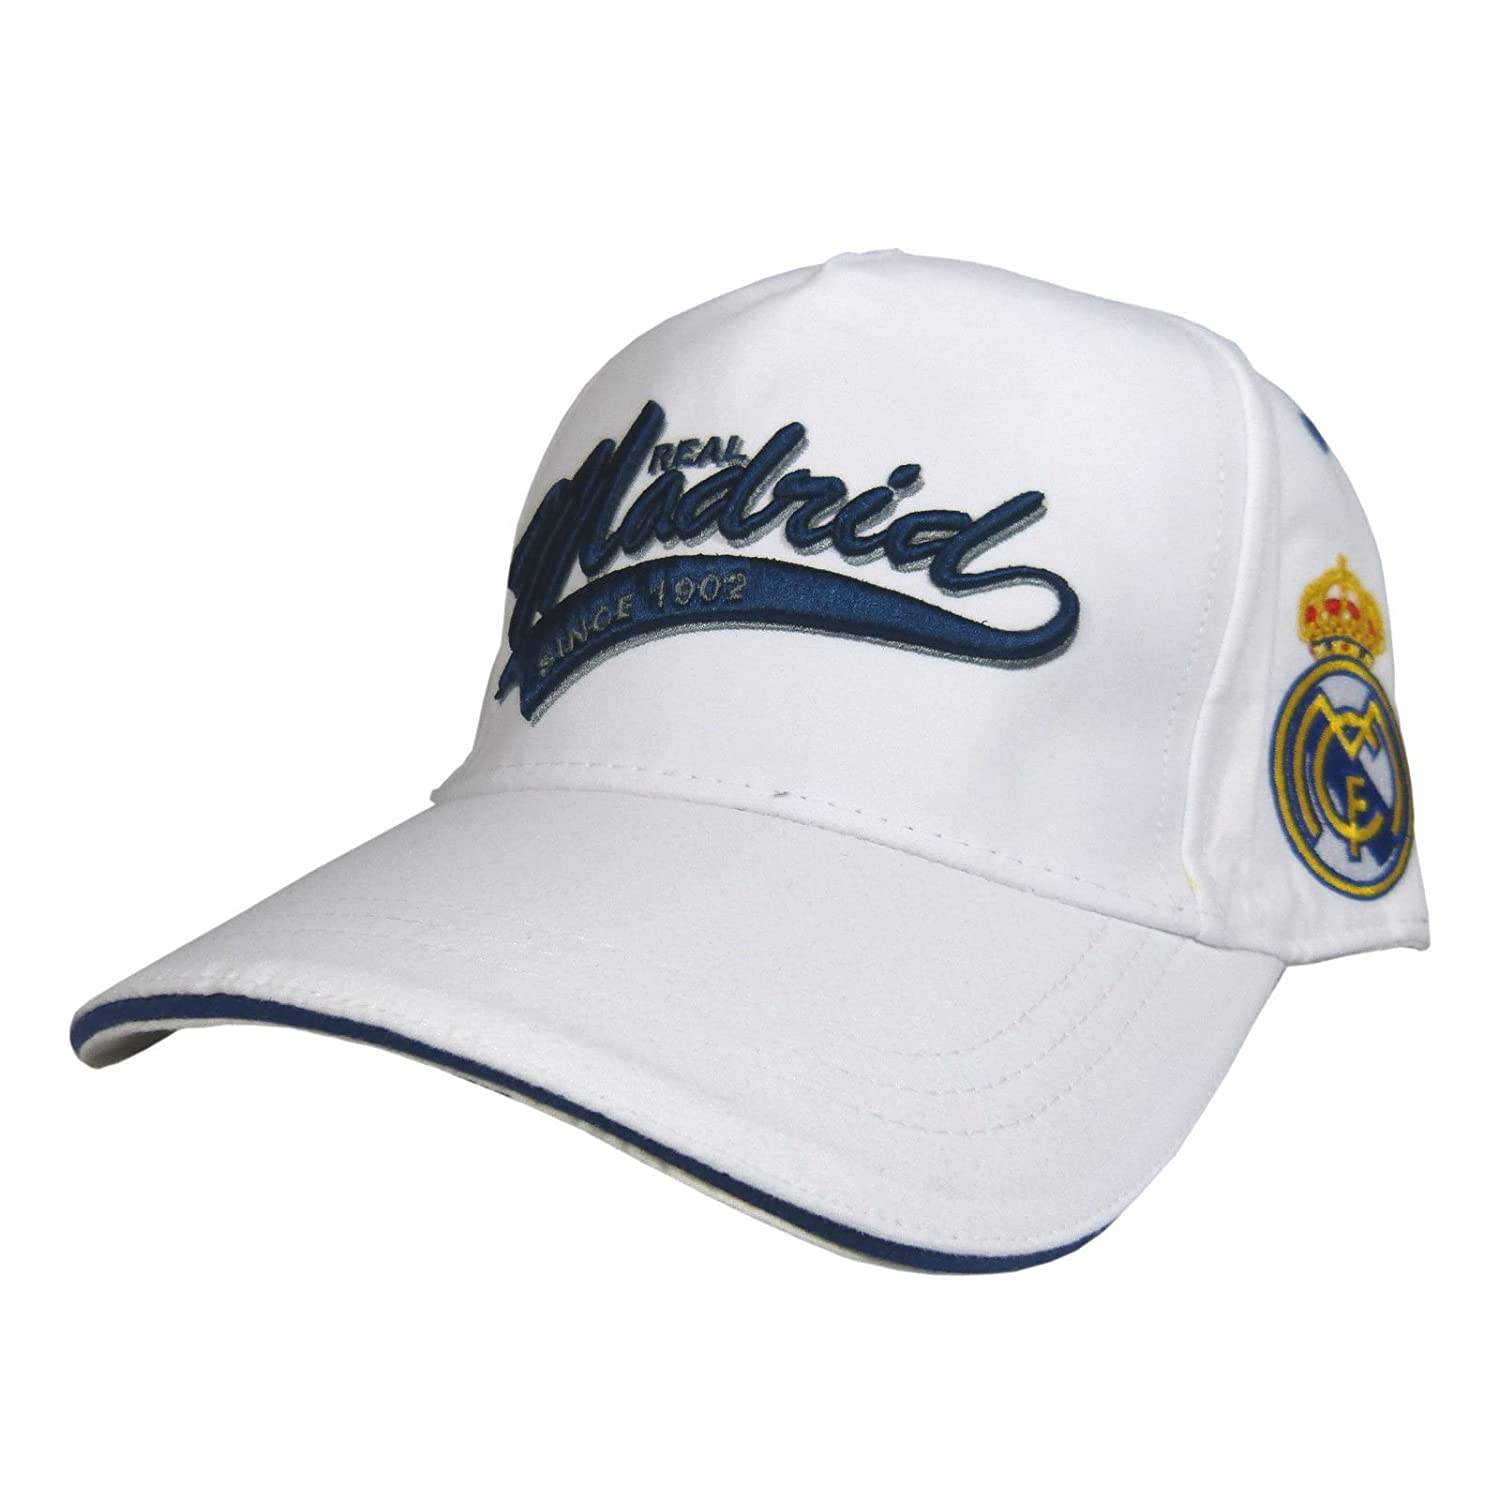 GORRA OFICIAL REAL MADRID BLANCA AVANCE TEMP. 17 ADULTO: Amazon.es ...